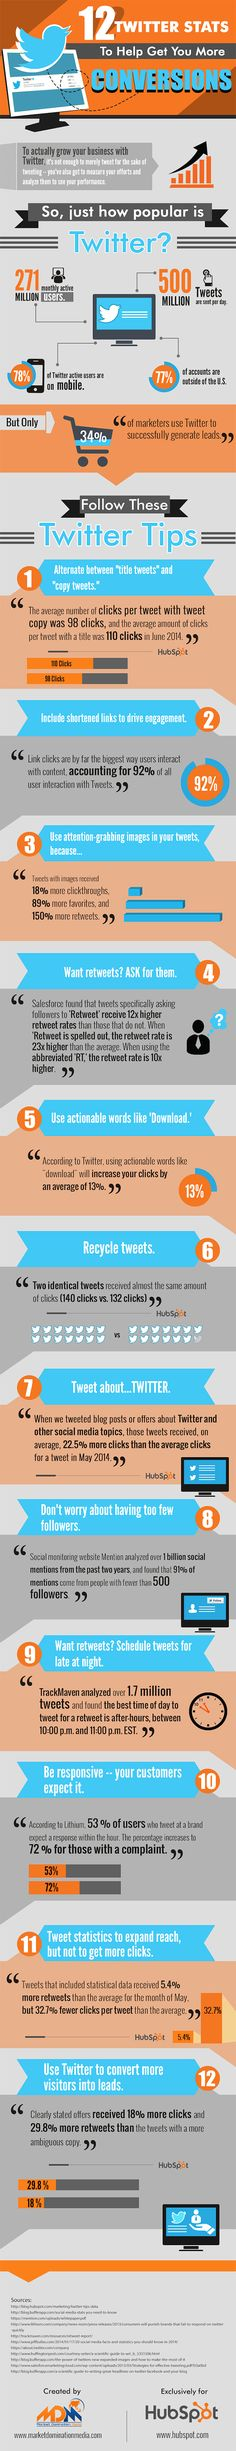 12 Awesome Tips to Get More Conversions on Twitter #SocialMedia #Infographic